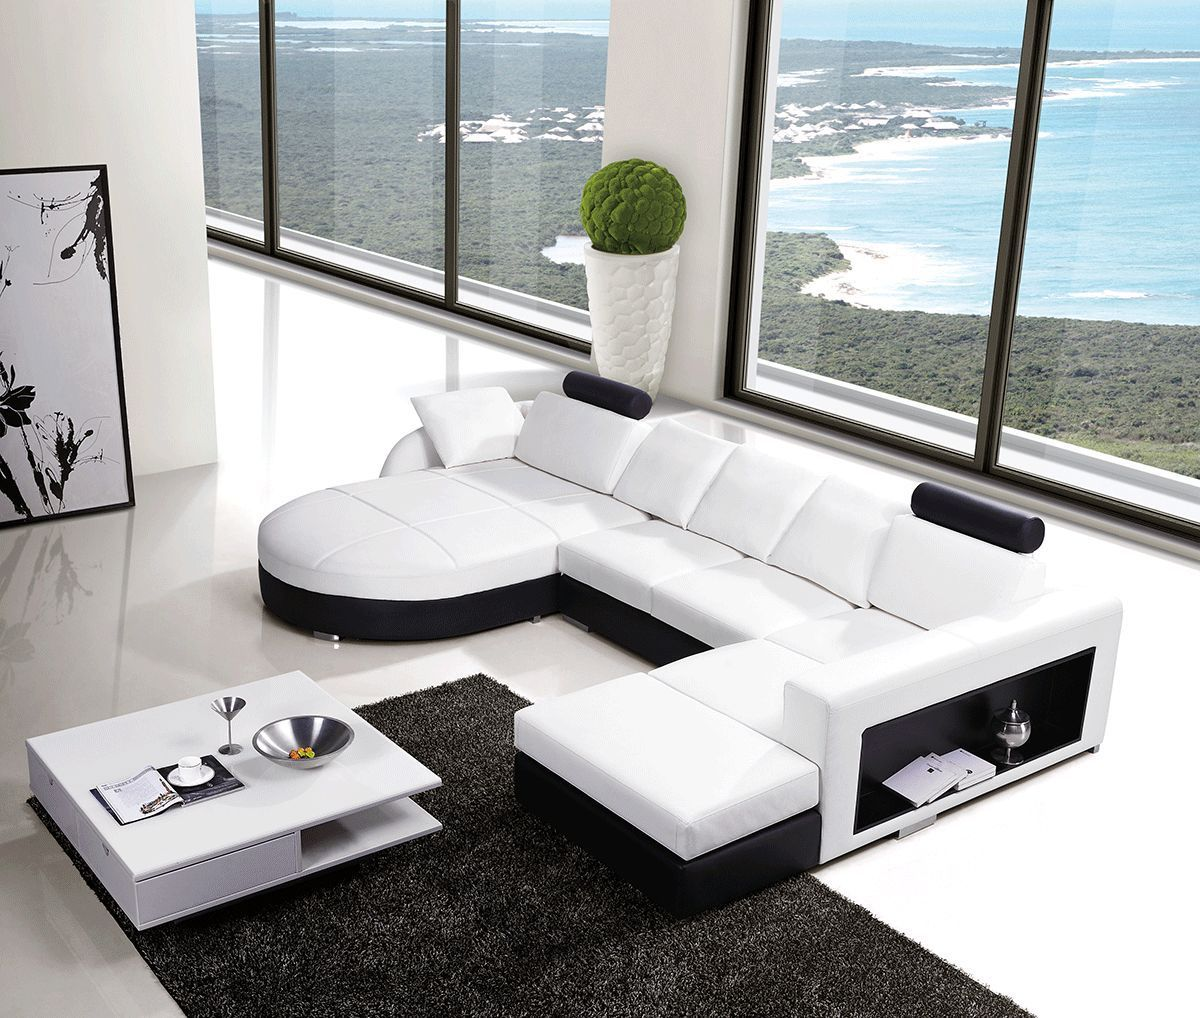 round white leather sectionals | leather sectional sofa with storage ...